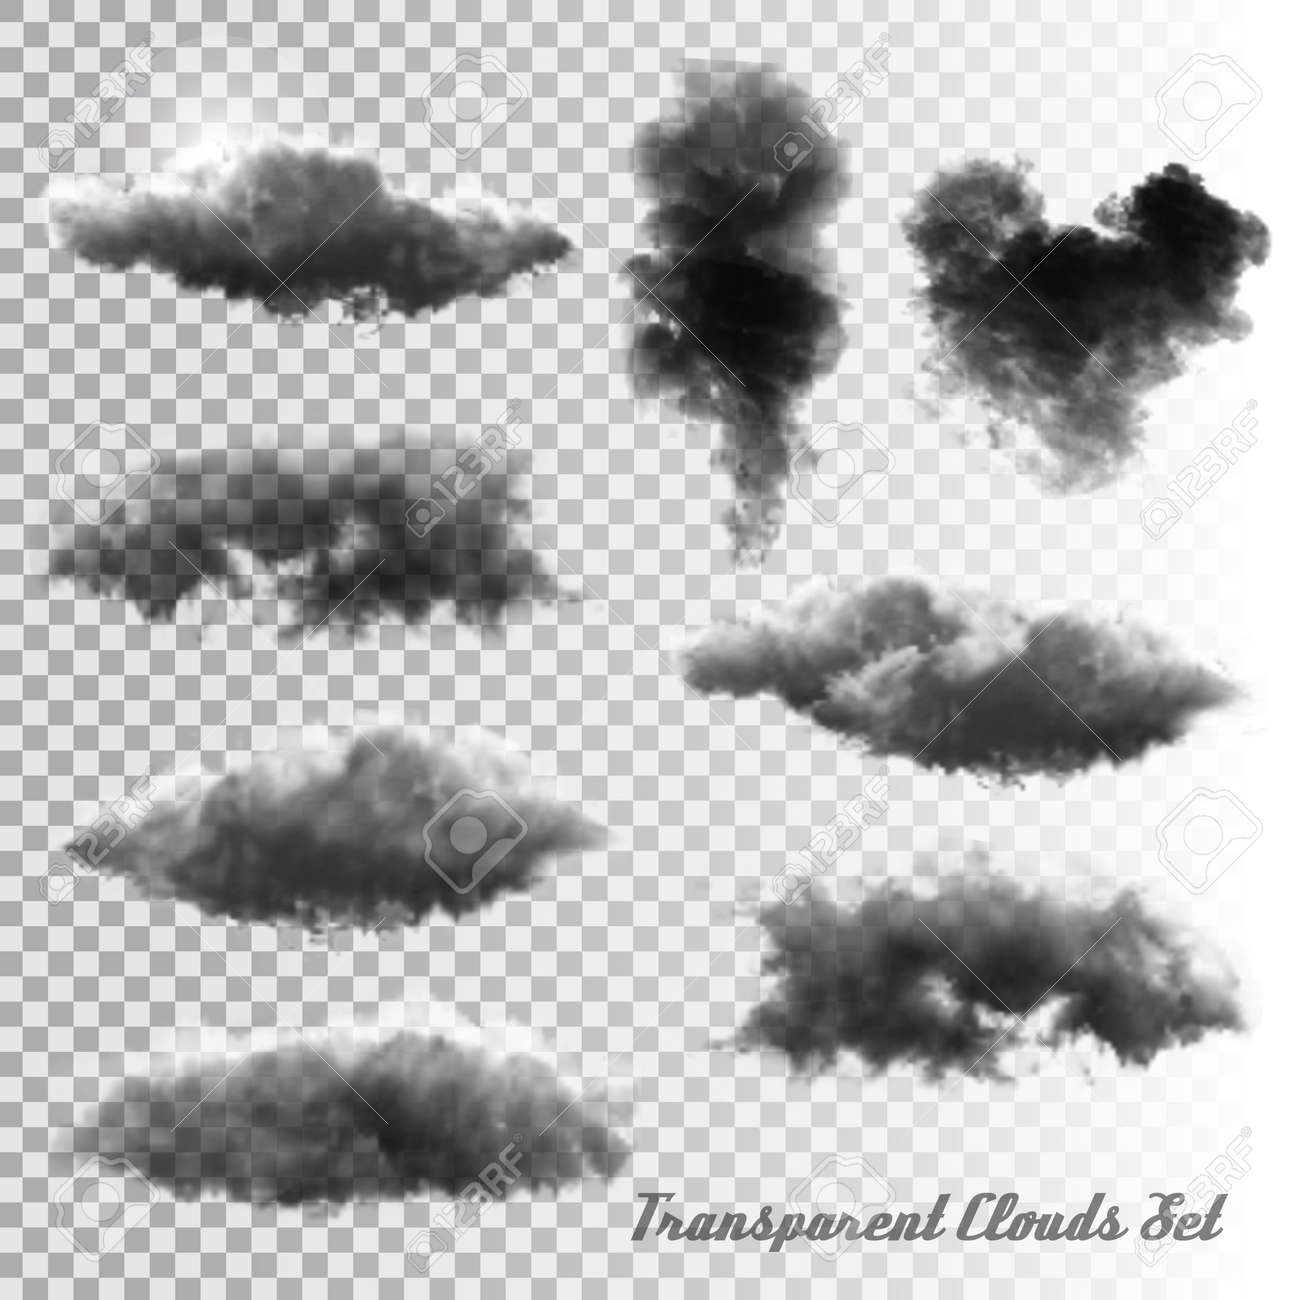 Set of transparent clouds and smoke. Vector. - 46674081